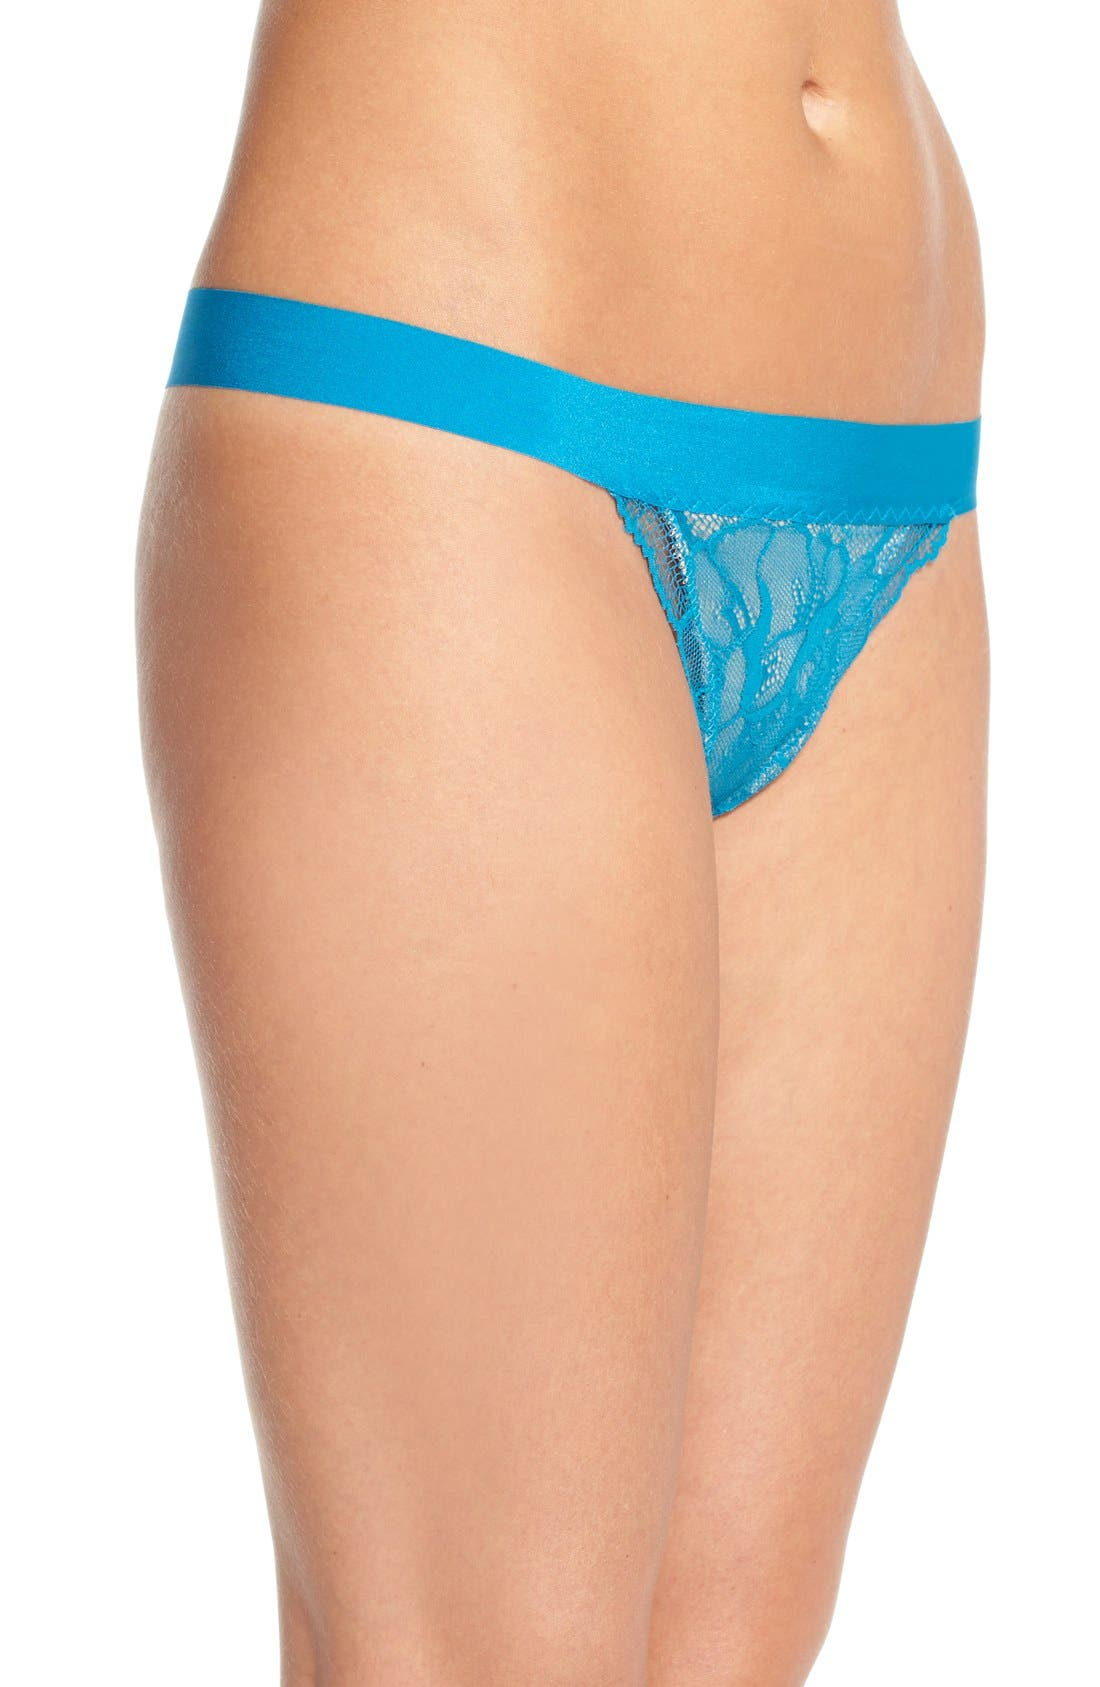 'Double Take' Lace G-String Thong,                             Alternate thumbnail 18, color,